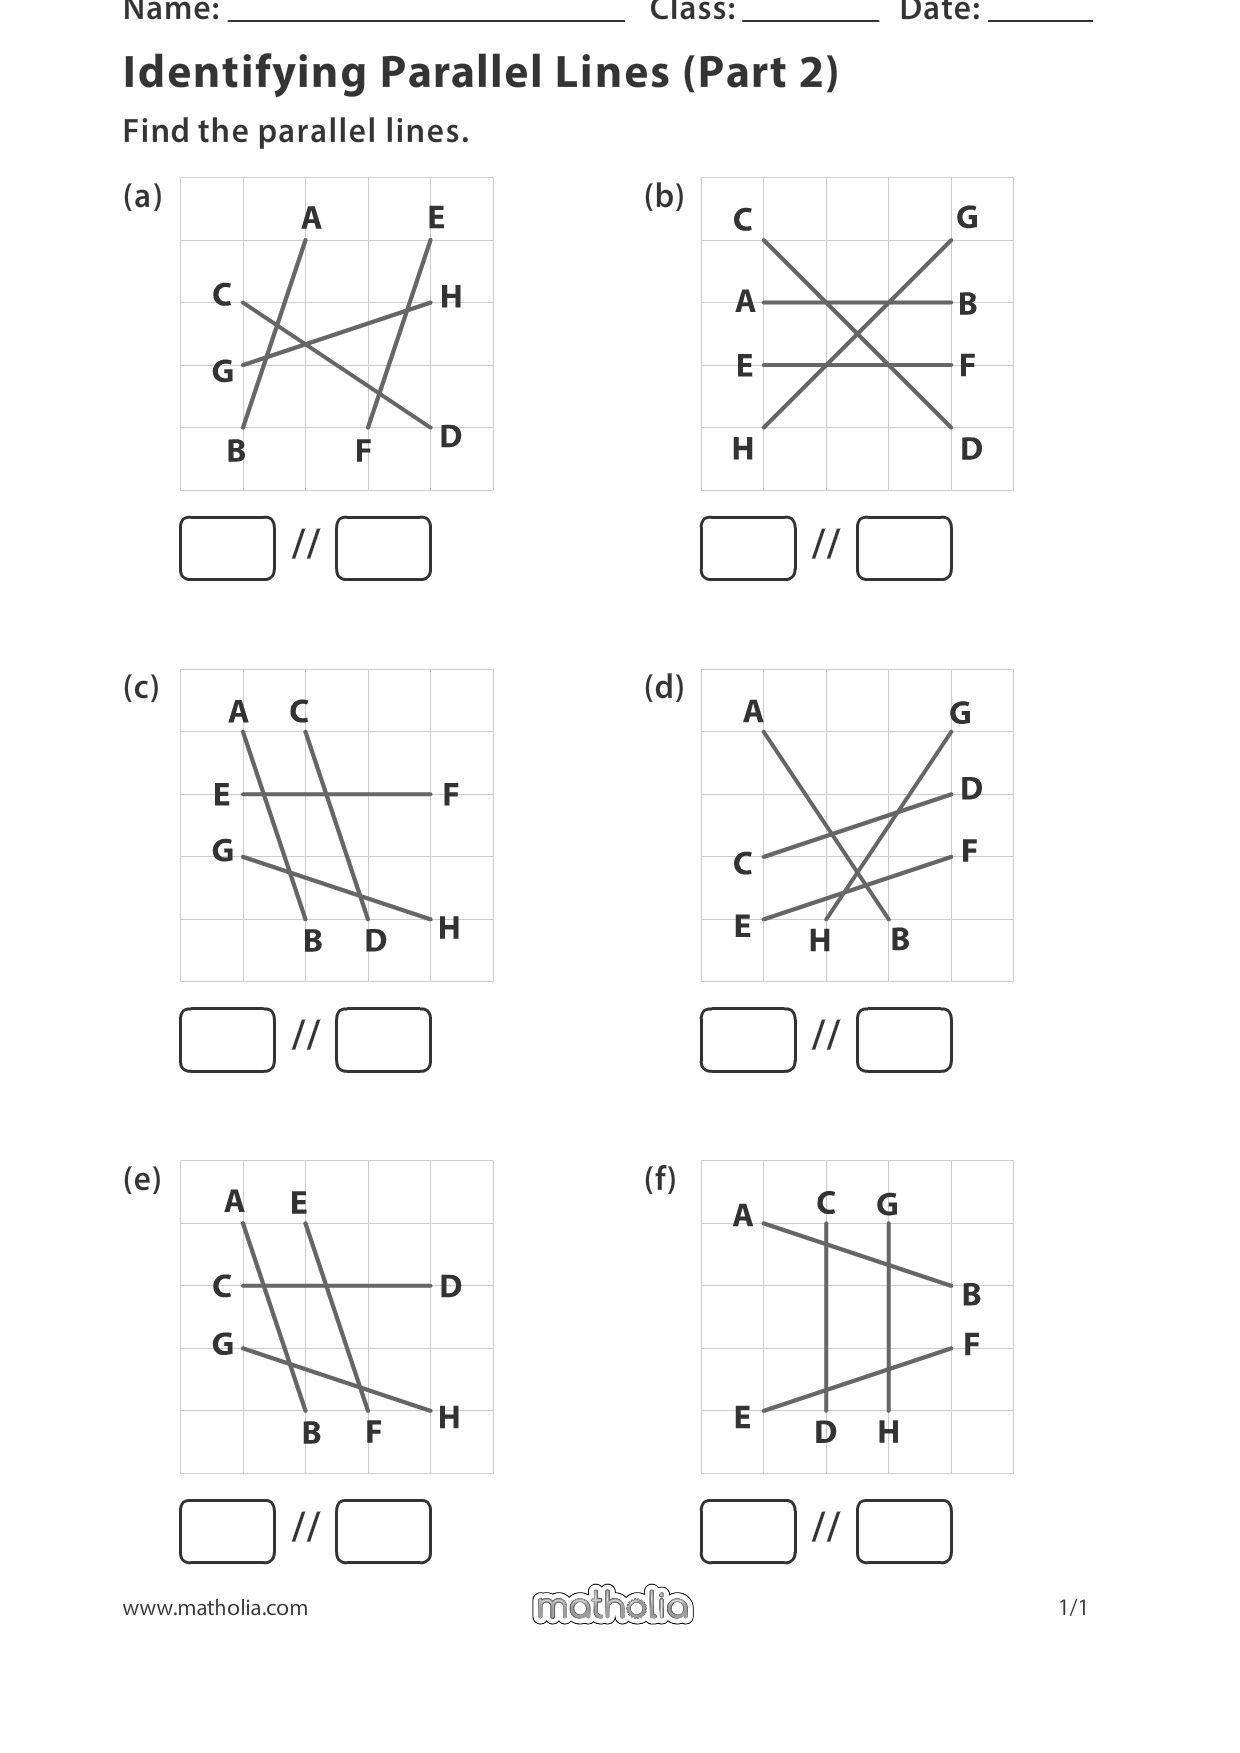 Identifying Parallel Lines Part 2 In